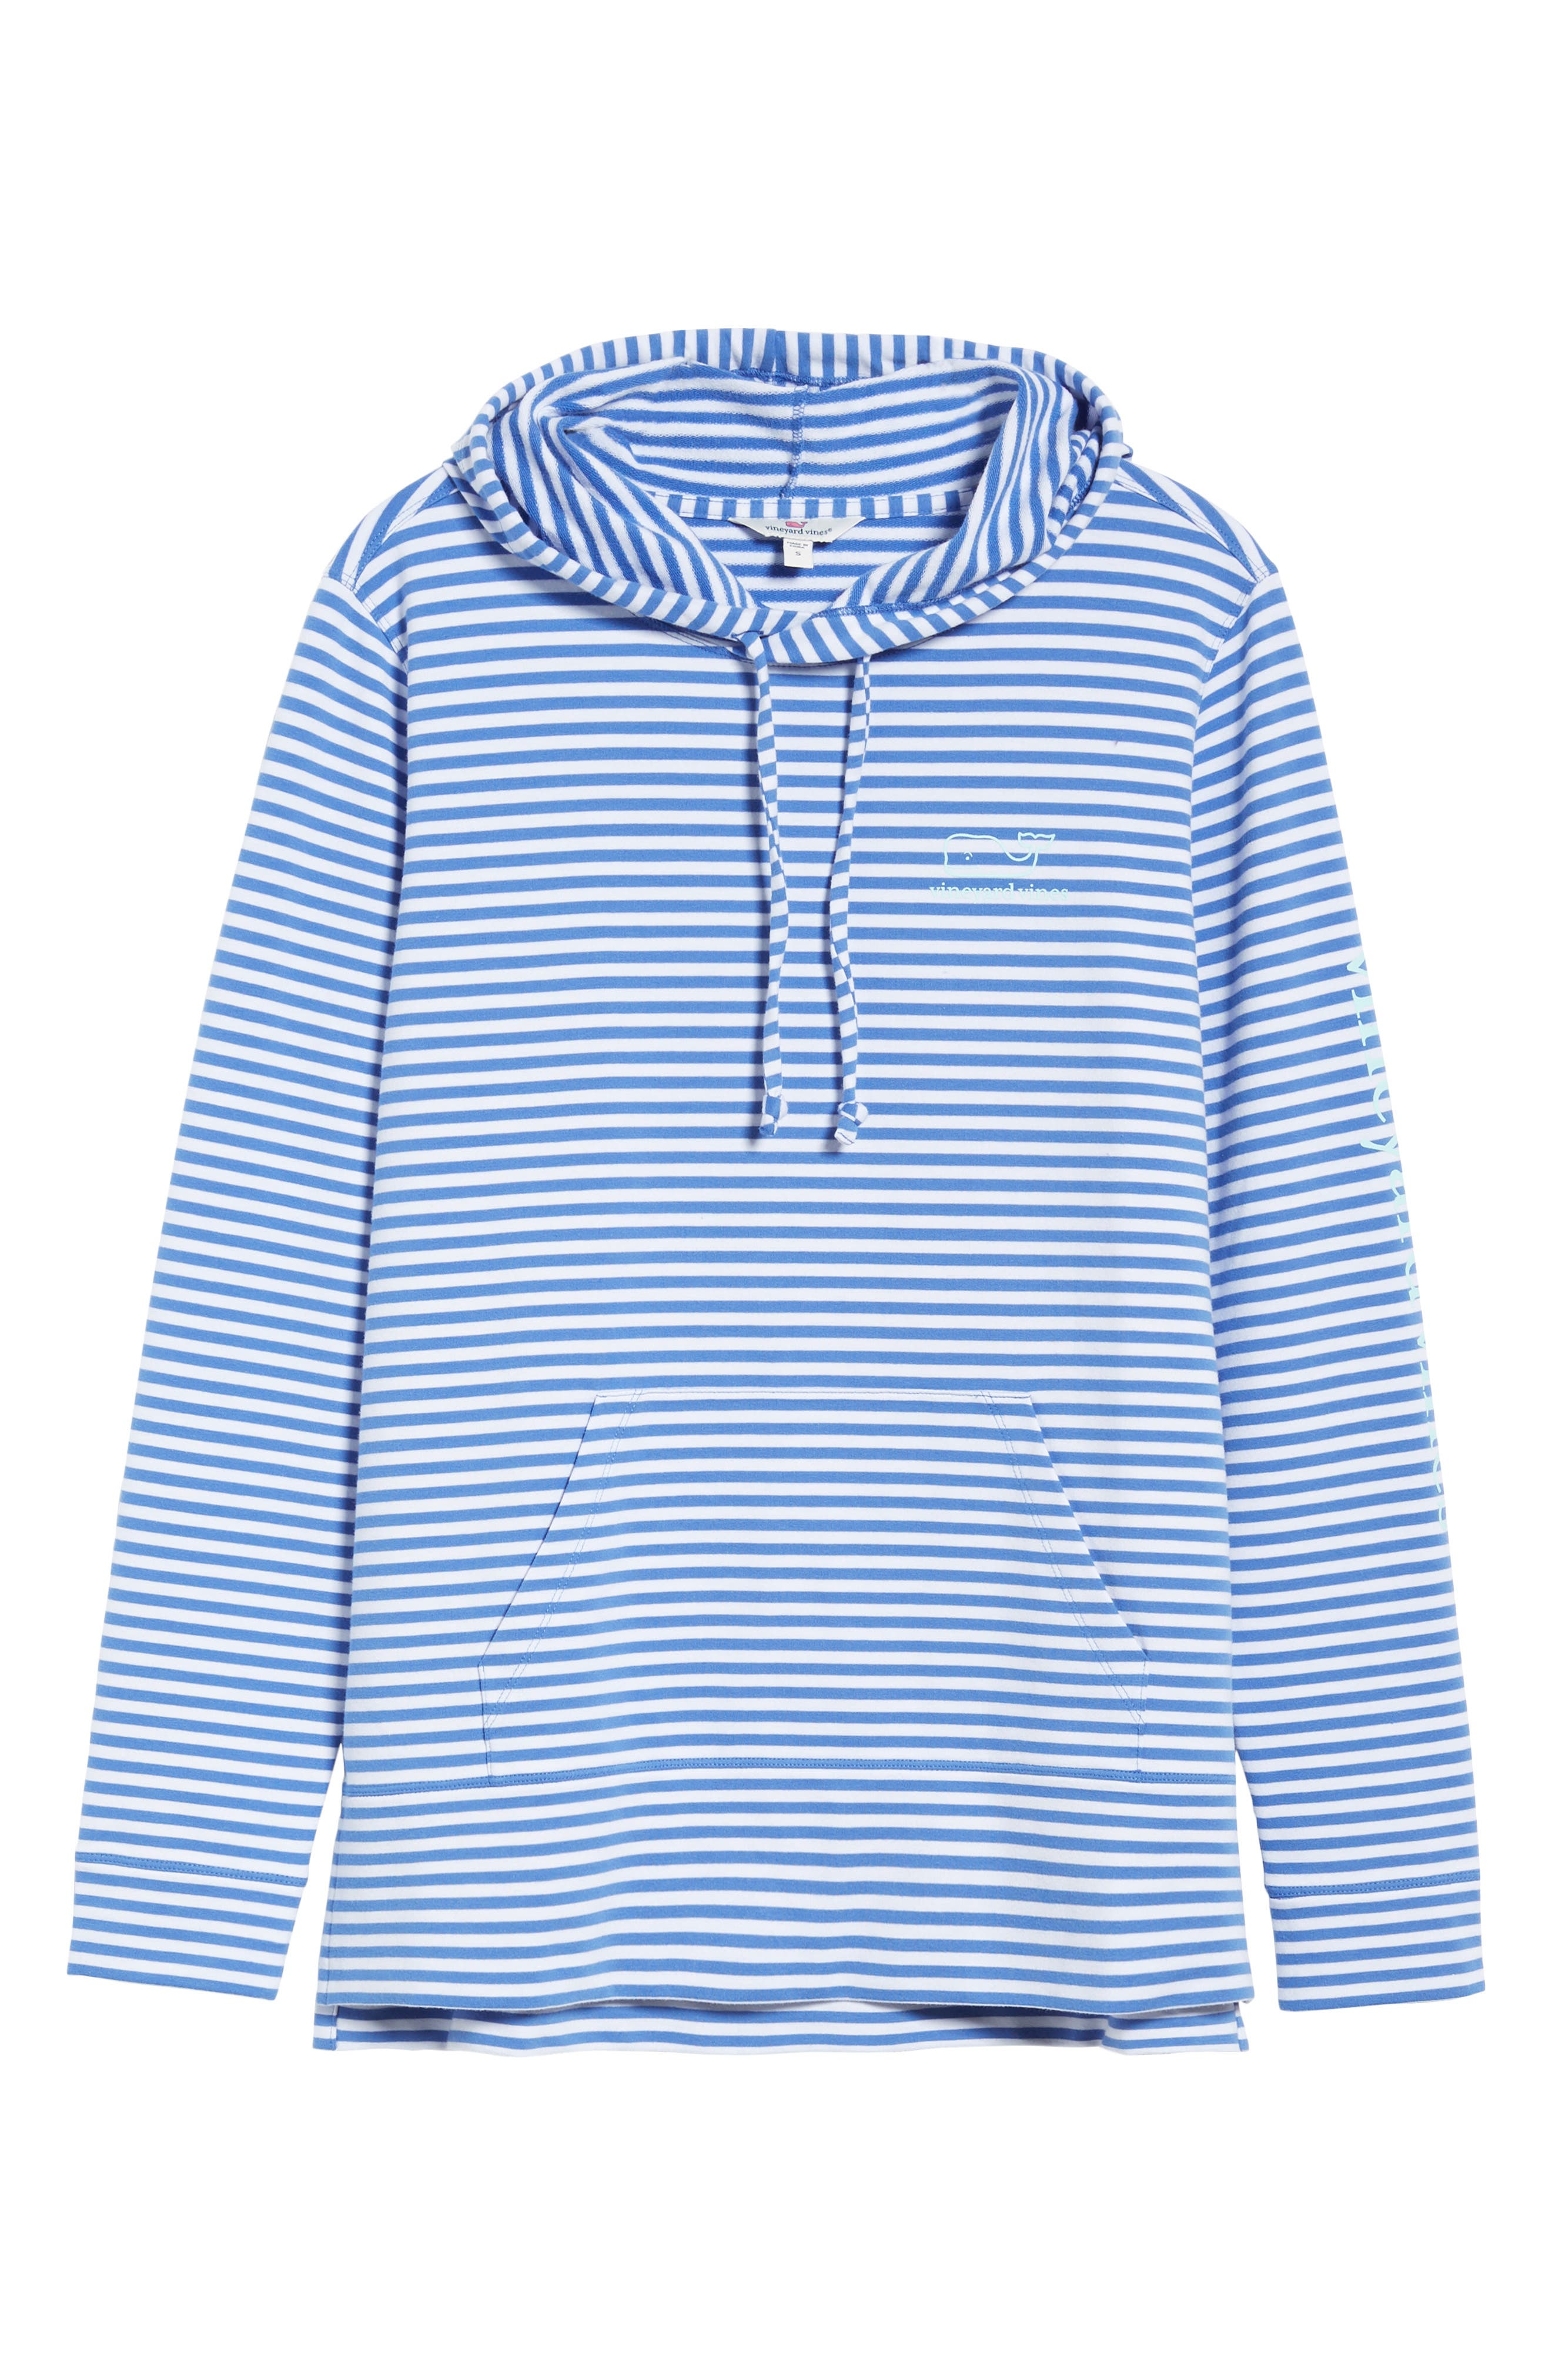 Stripe Whale Hoodie,                             Alternate thumbnail 6, color,                             477